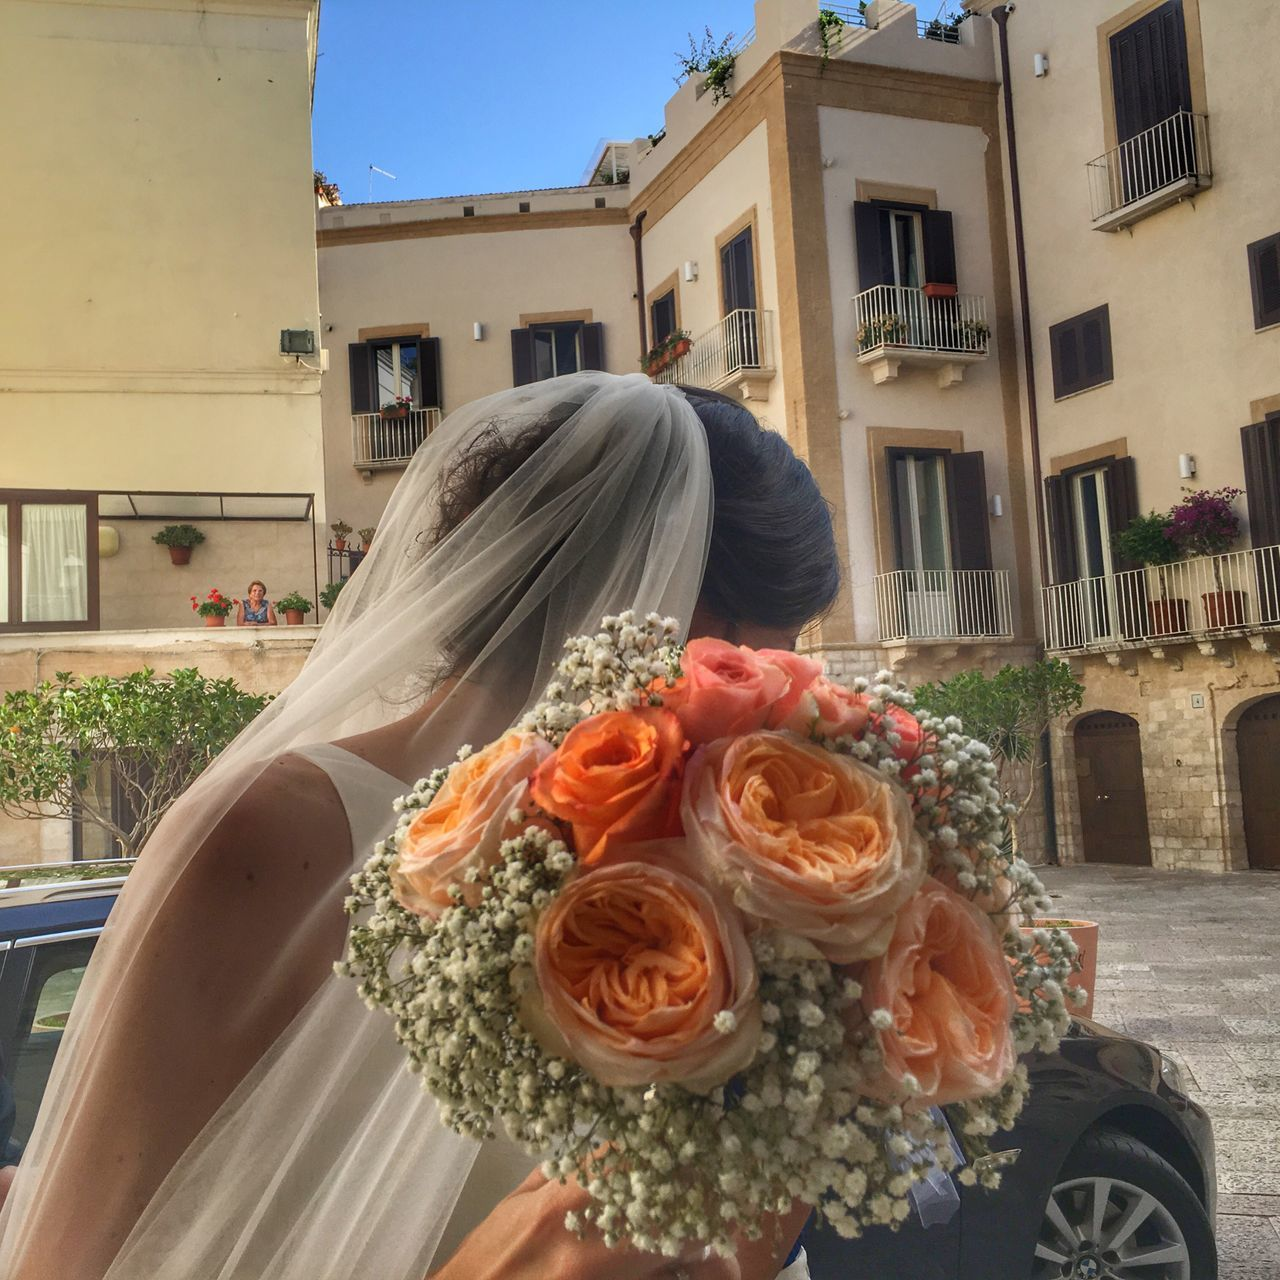 flower, bouquet, wedding, bride, wedding dress, real people, rose - flower, building exterior, life events, built structure, architecture, one person, celebration, women, day, lifestyles, outdoors, close-up, freshness, groom, bridegroom, people